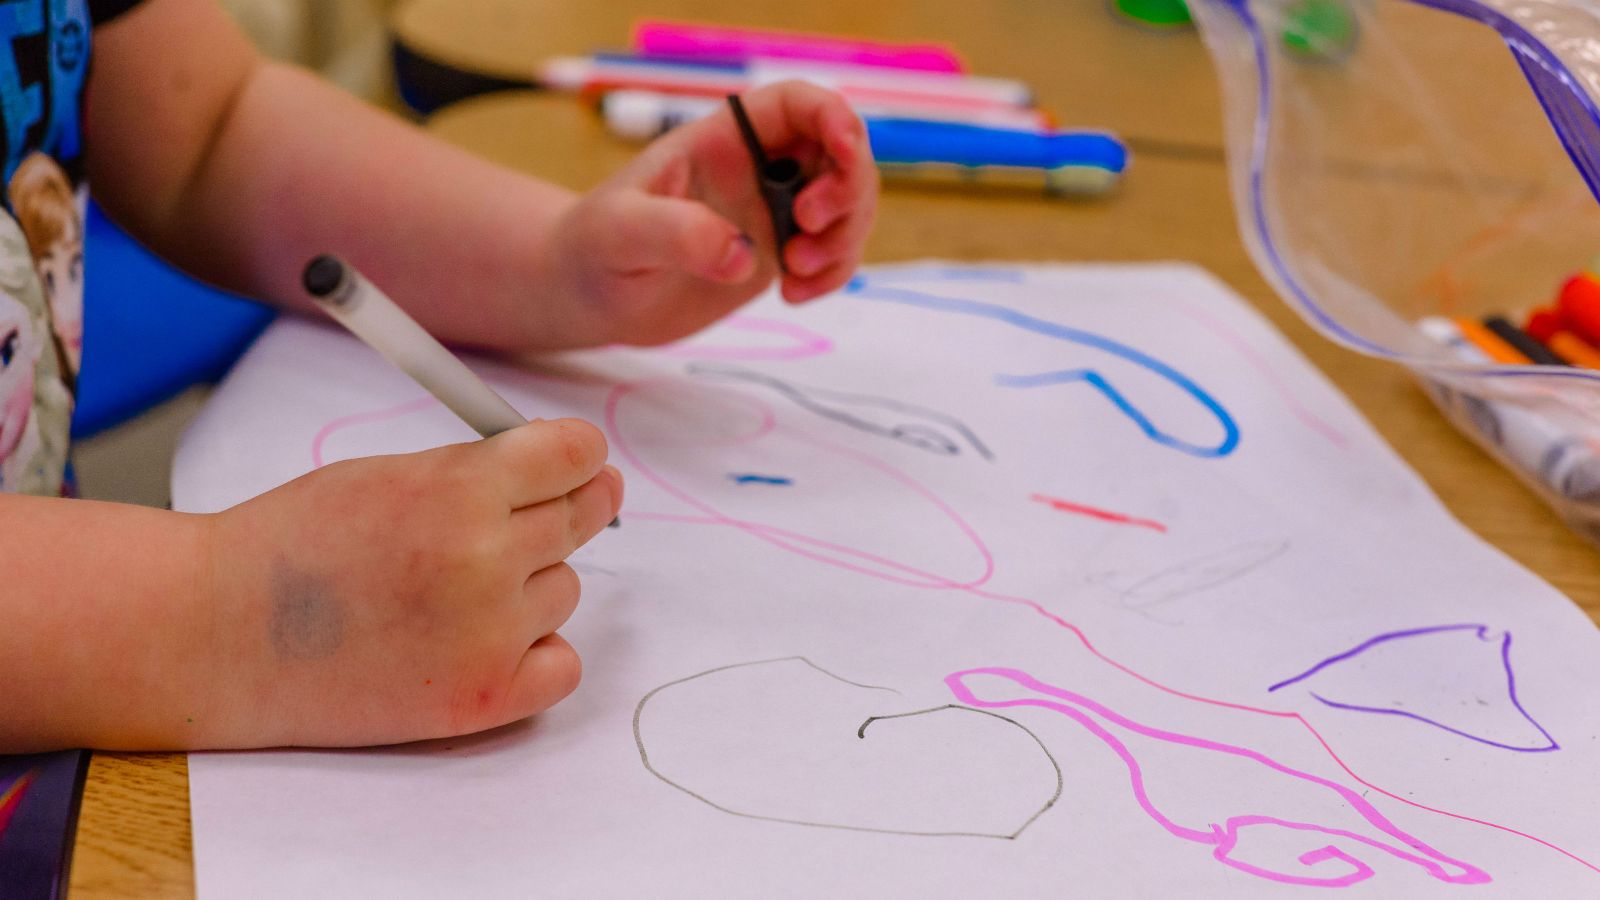 A child draws squiggly lines with a marker on paper.